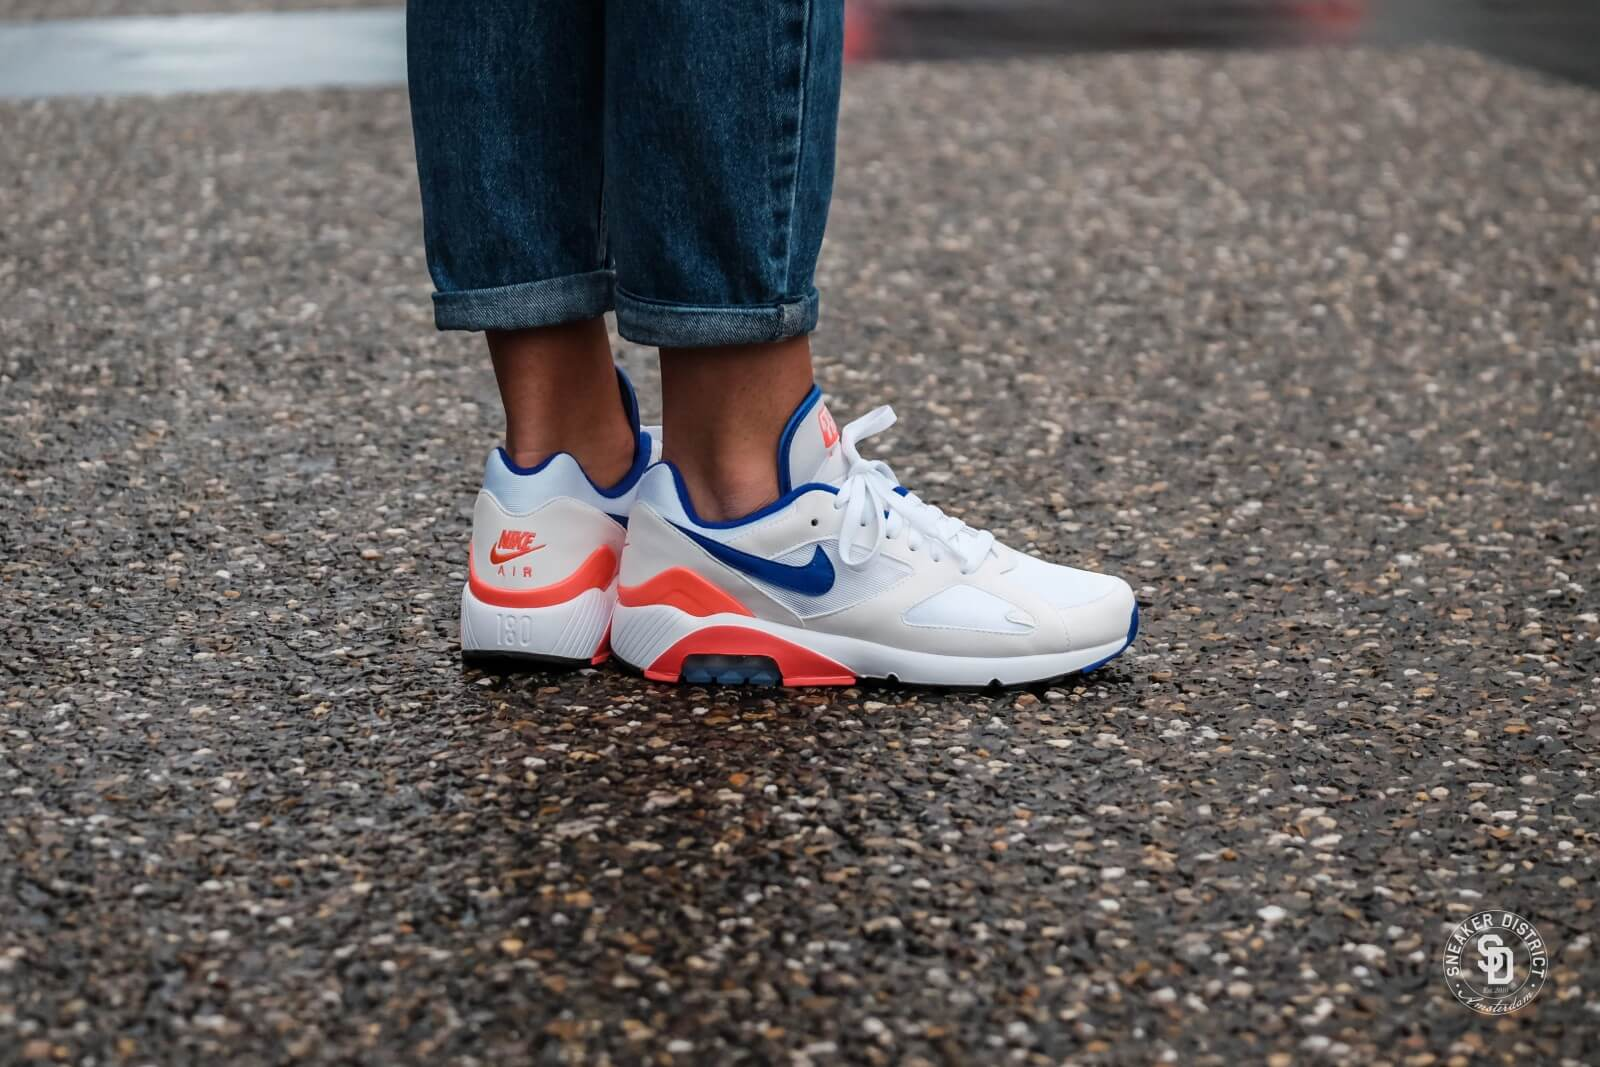 771567d8c3 Nike Women's Air Max 180 White/Ultramarine Solar Red AH6786 100